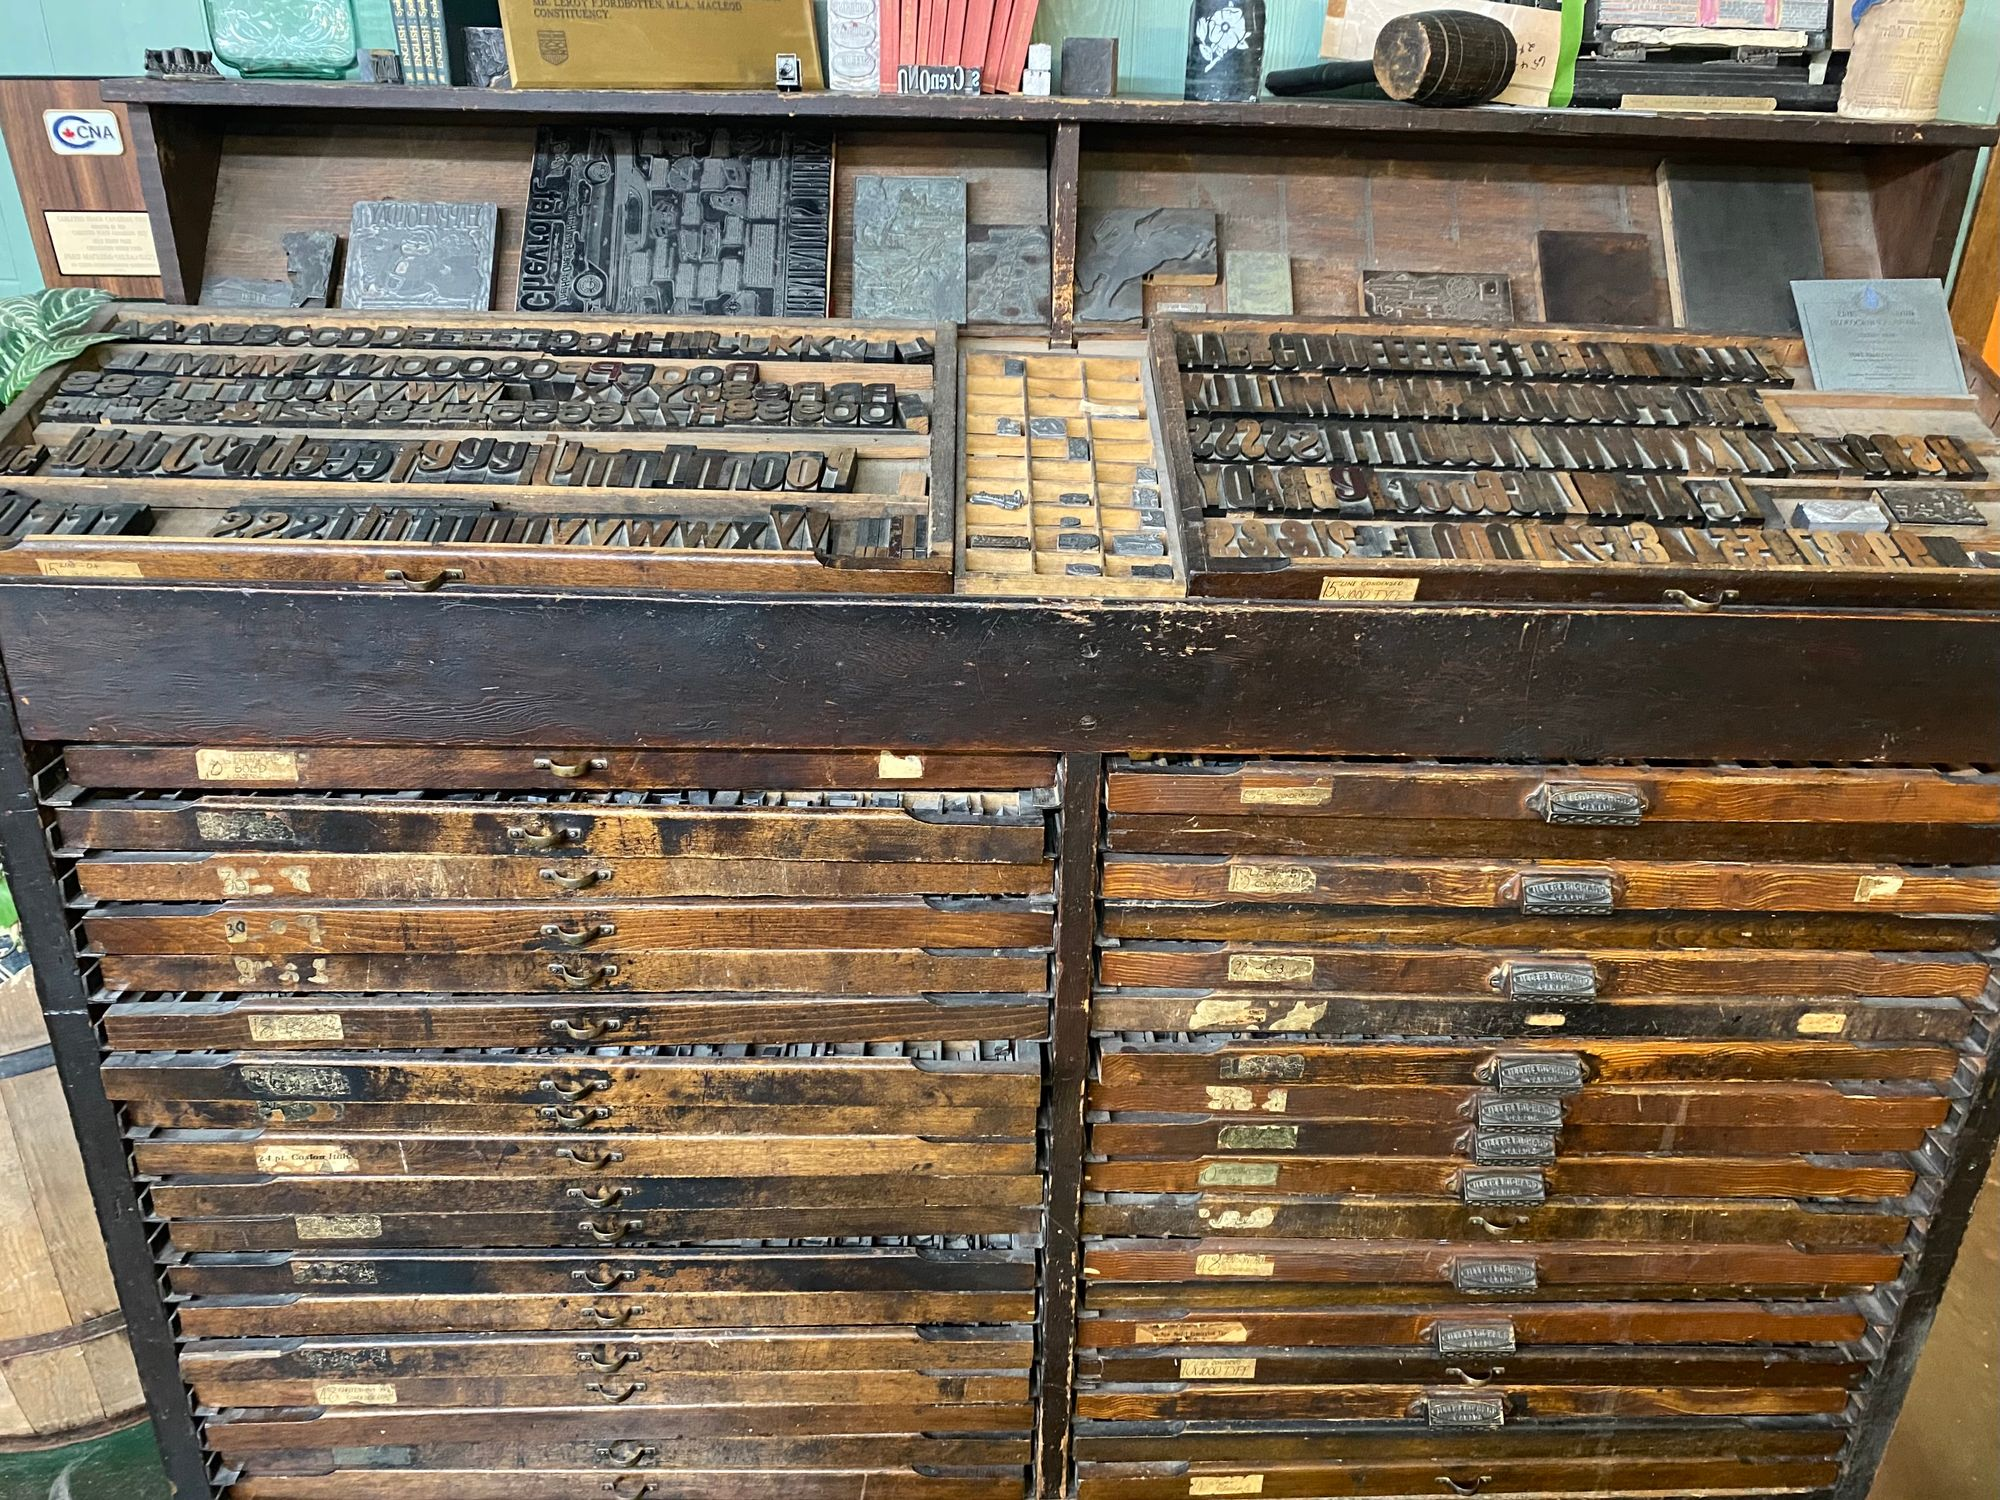 Image: A newspaper printing cabinet that contains metal letters for a printing press.